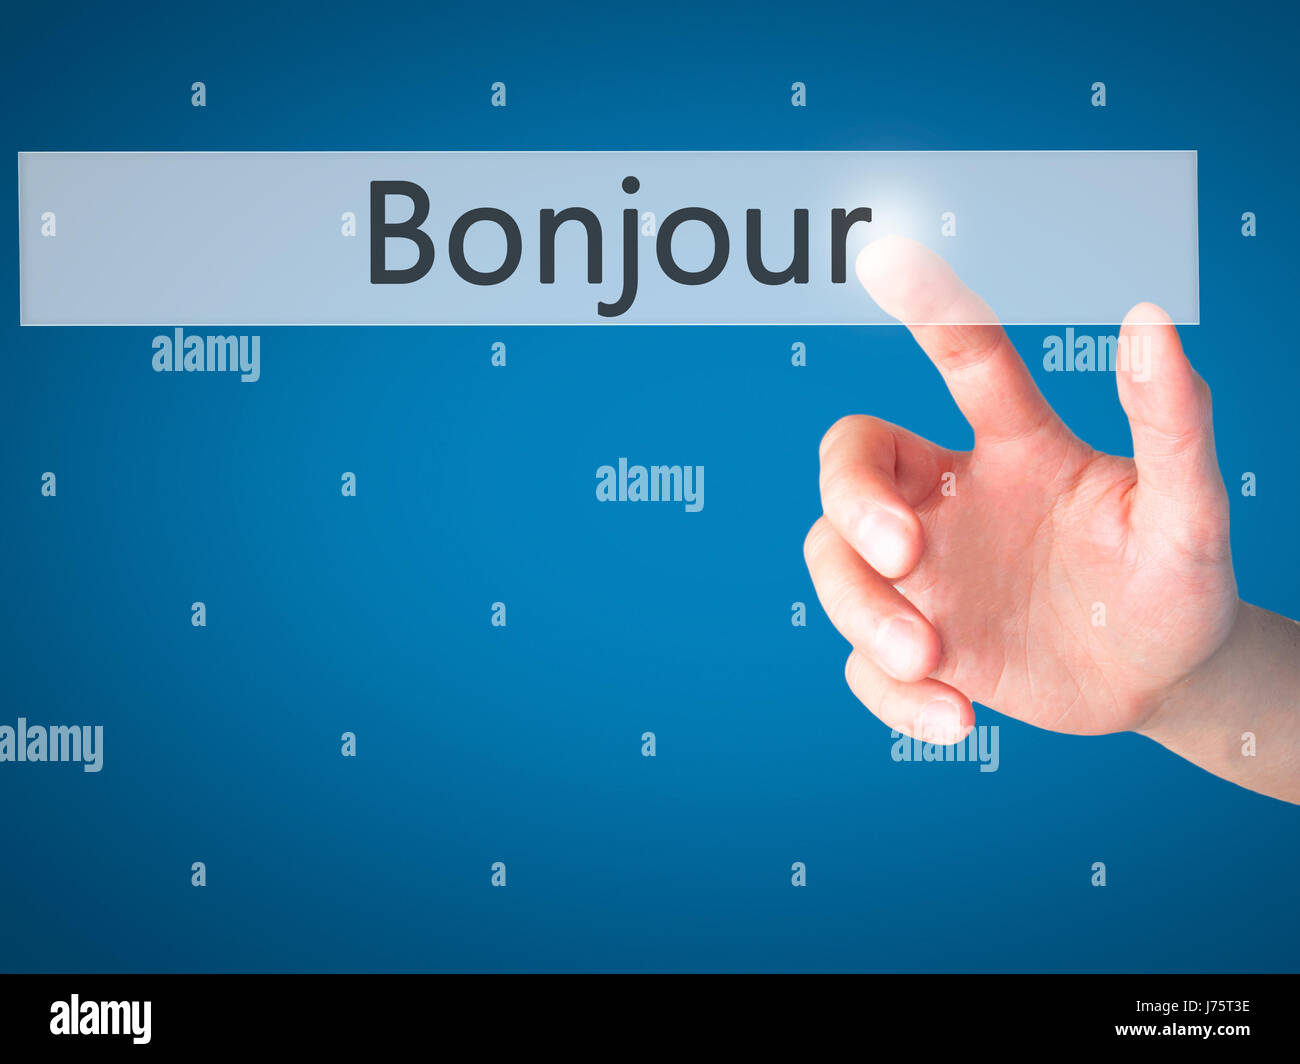 Bonjour Good Morning In French Hand Pressing A Button On Blurred